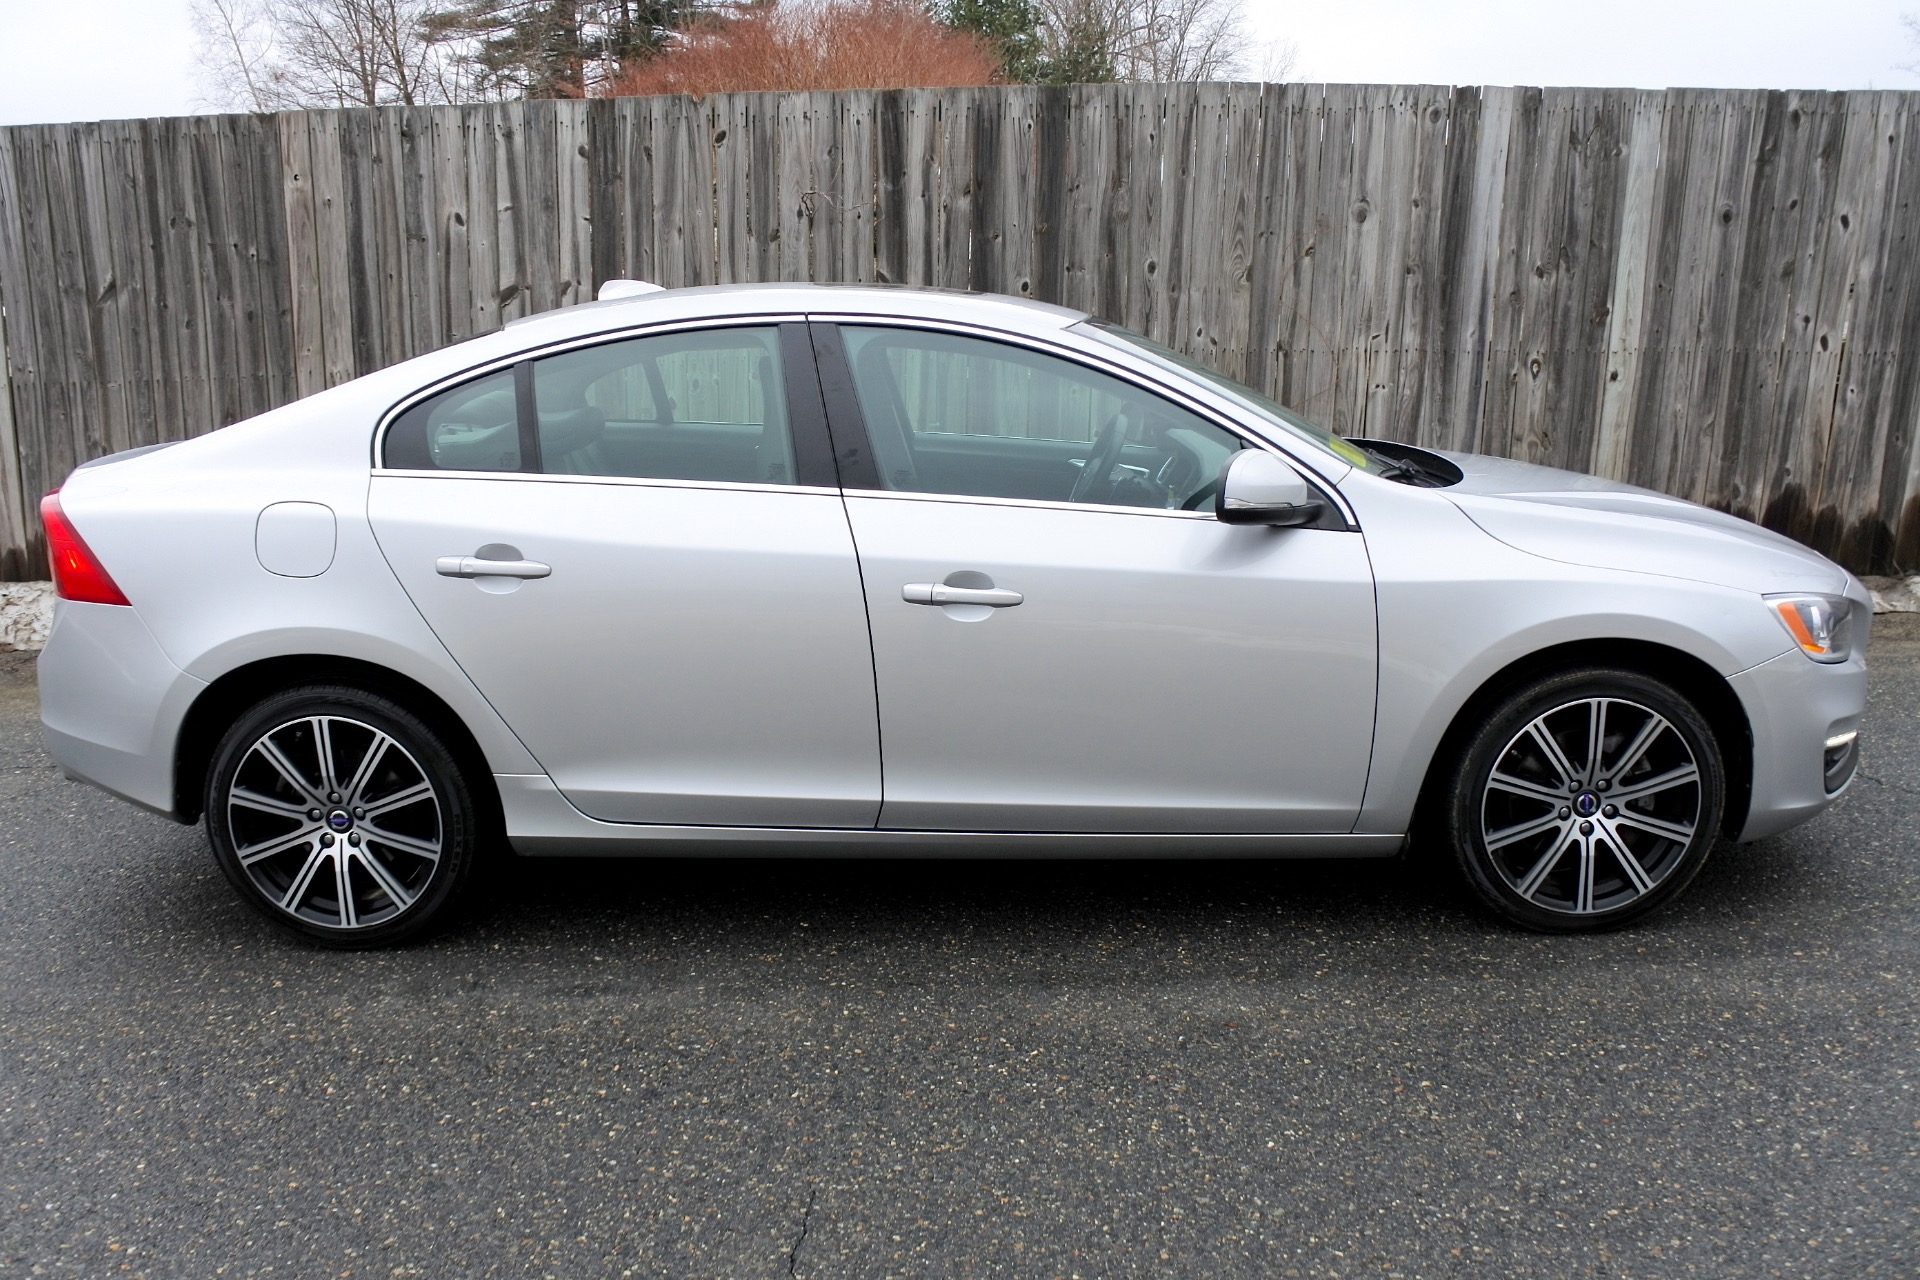 Used 2014 Volvo S60 4dr Sdn T5 Premier AWD Used 2014 Volvo S60 4dr Sdn T5 Premier AWD for sale  at Metro West Motorcars LLC in Shrewsbury MA 5